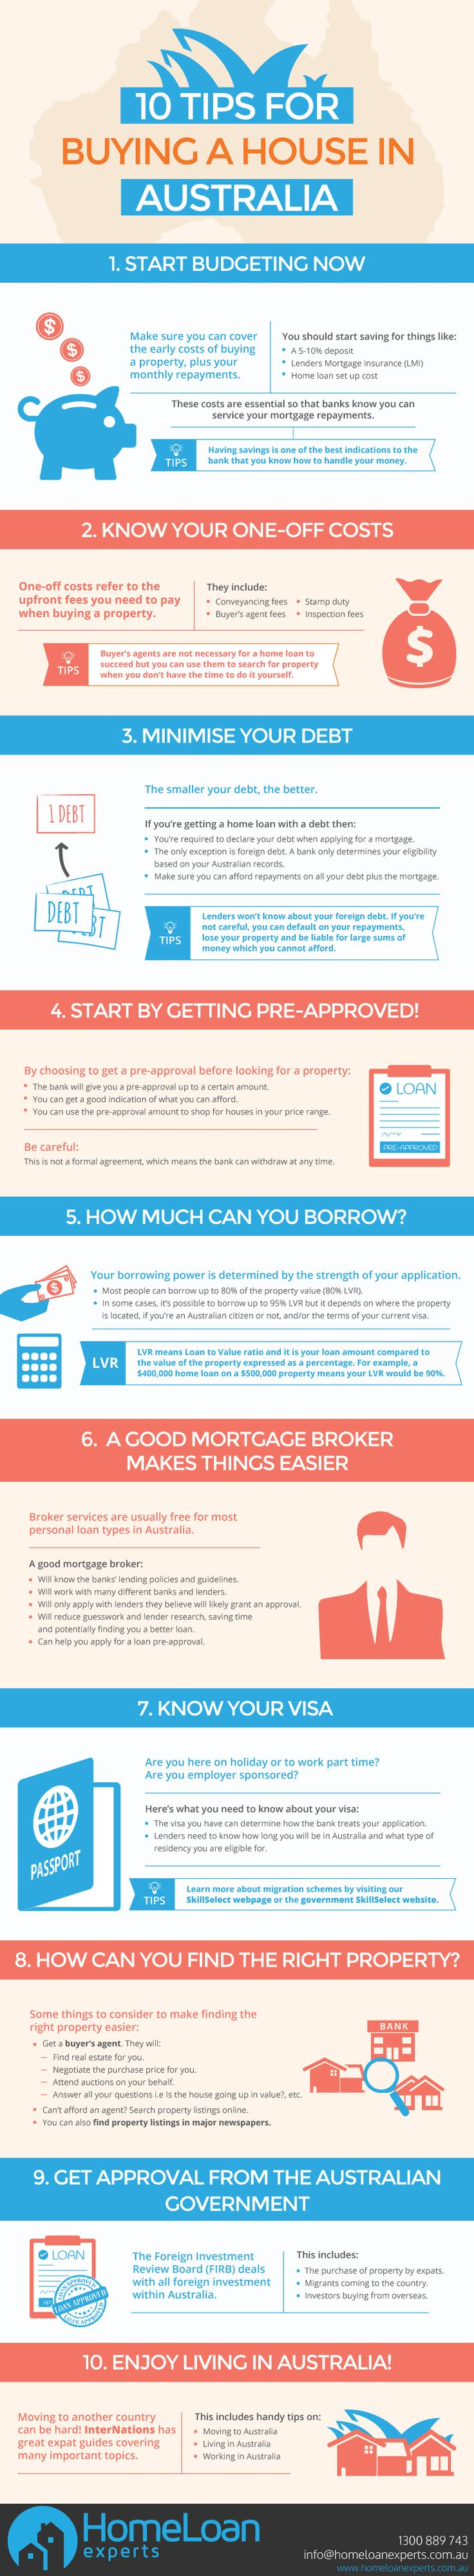 10 tips for an expatriate buying property in Australia. #infographic #tips #Australia More info on - https://www.homeloanexperts.com.au/blog/non_resident/10-tips-for-buying-a-house-in-australia/